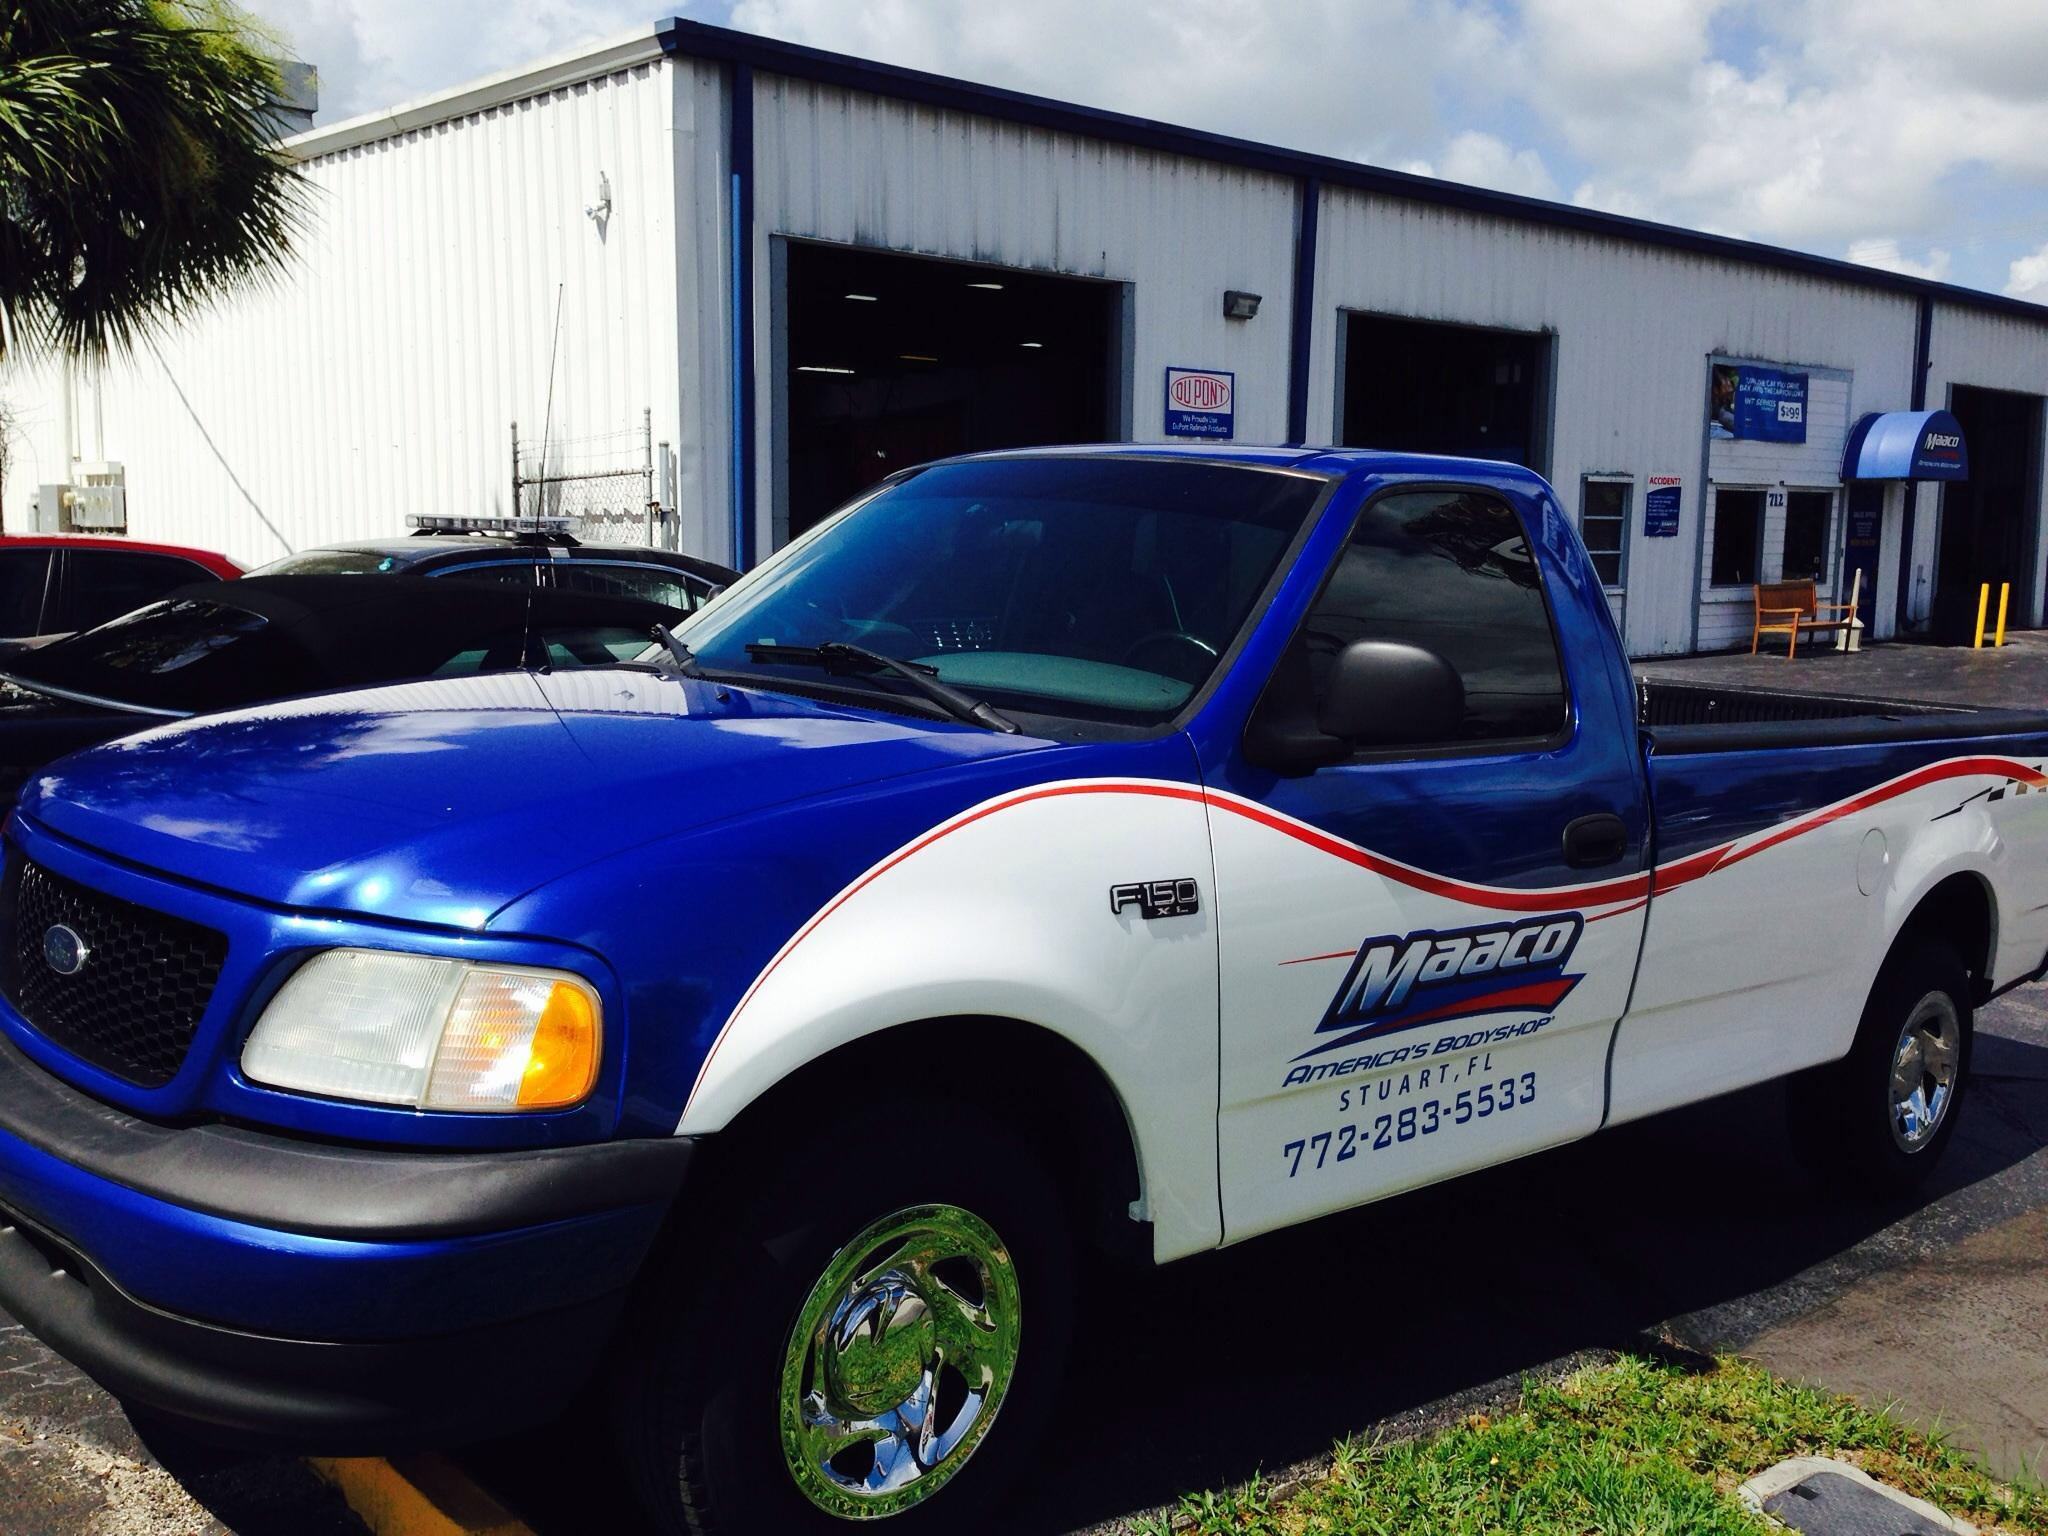 Maaco Collision Repair & Auto Painting In Stuart, FL